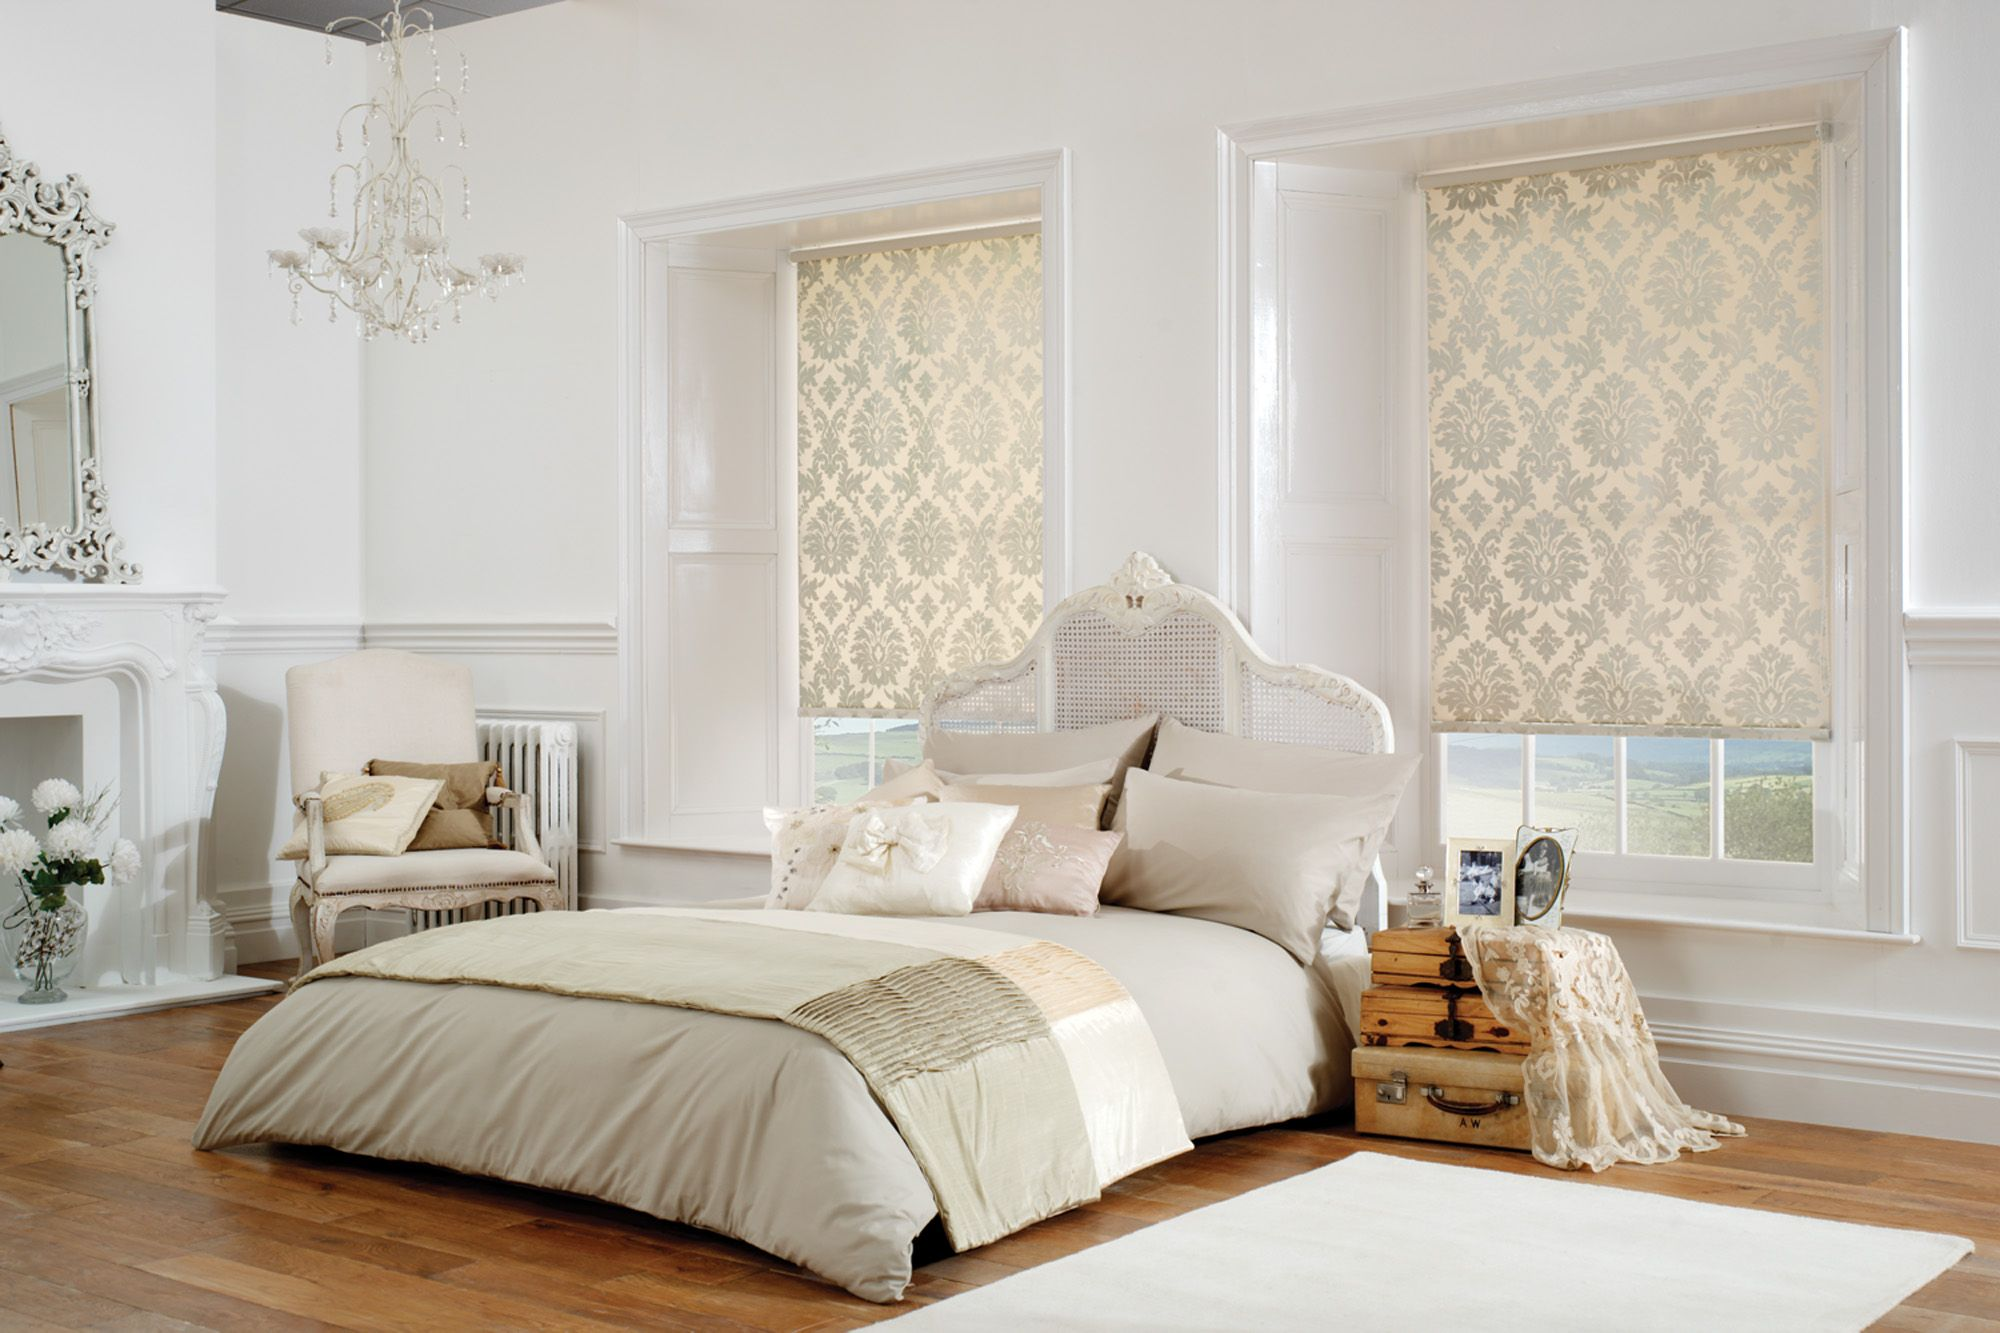 Shimmering Cream And White Gold Damask Patterned Roller Blinds In A White And Cream Bedroom With A Shabby Chi